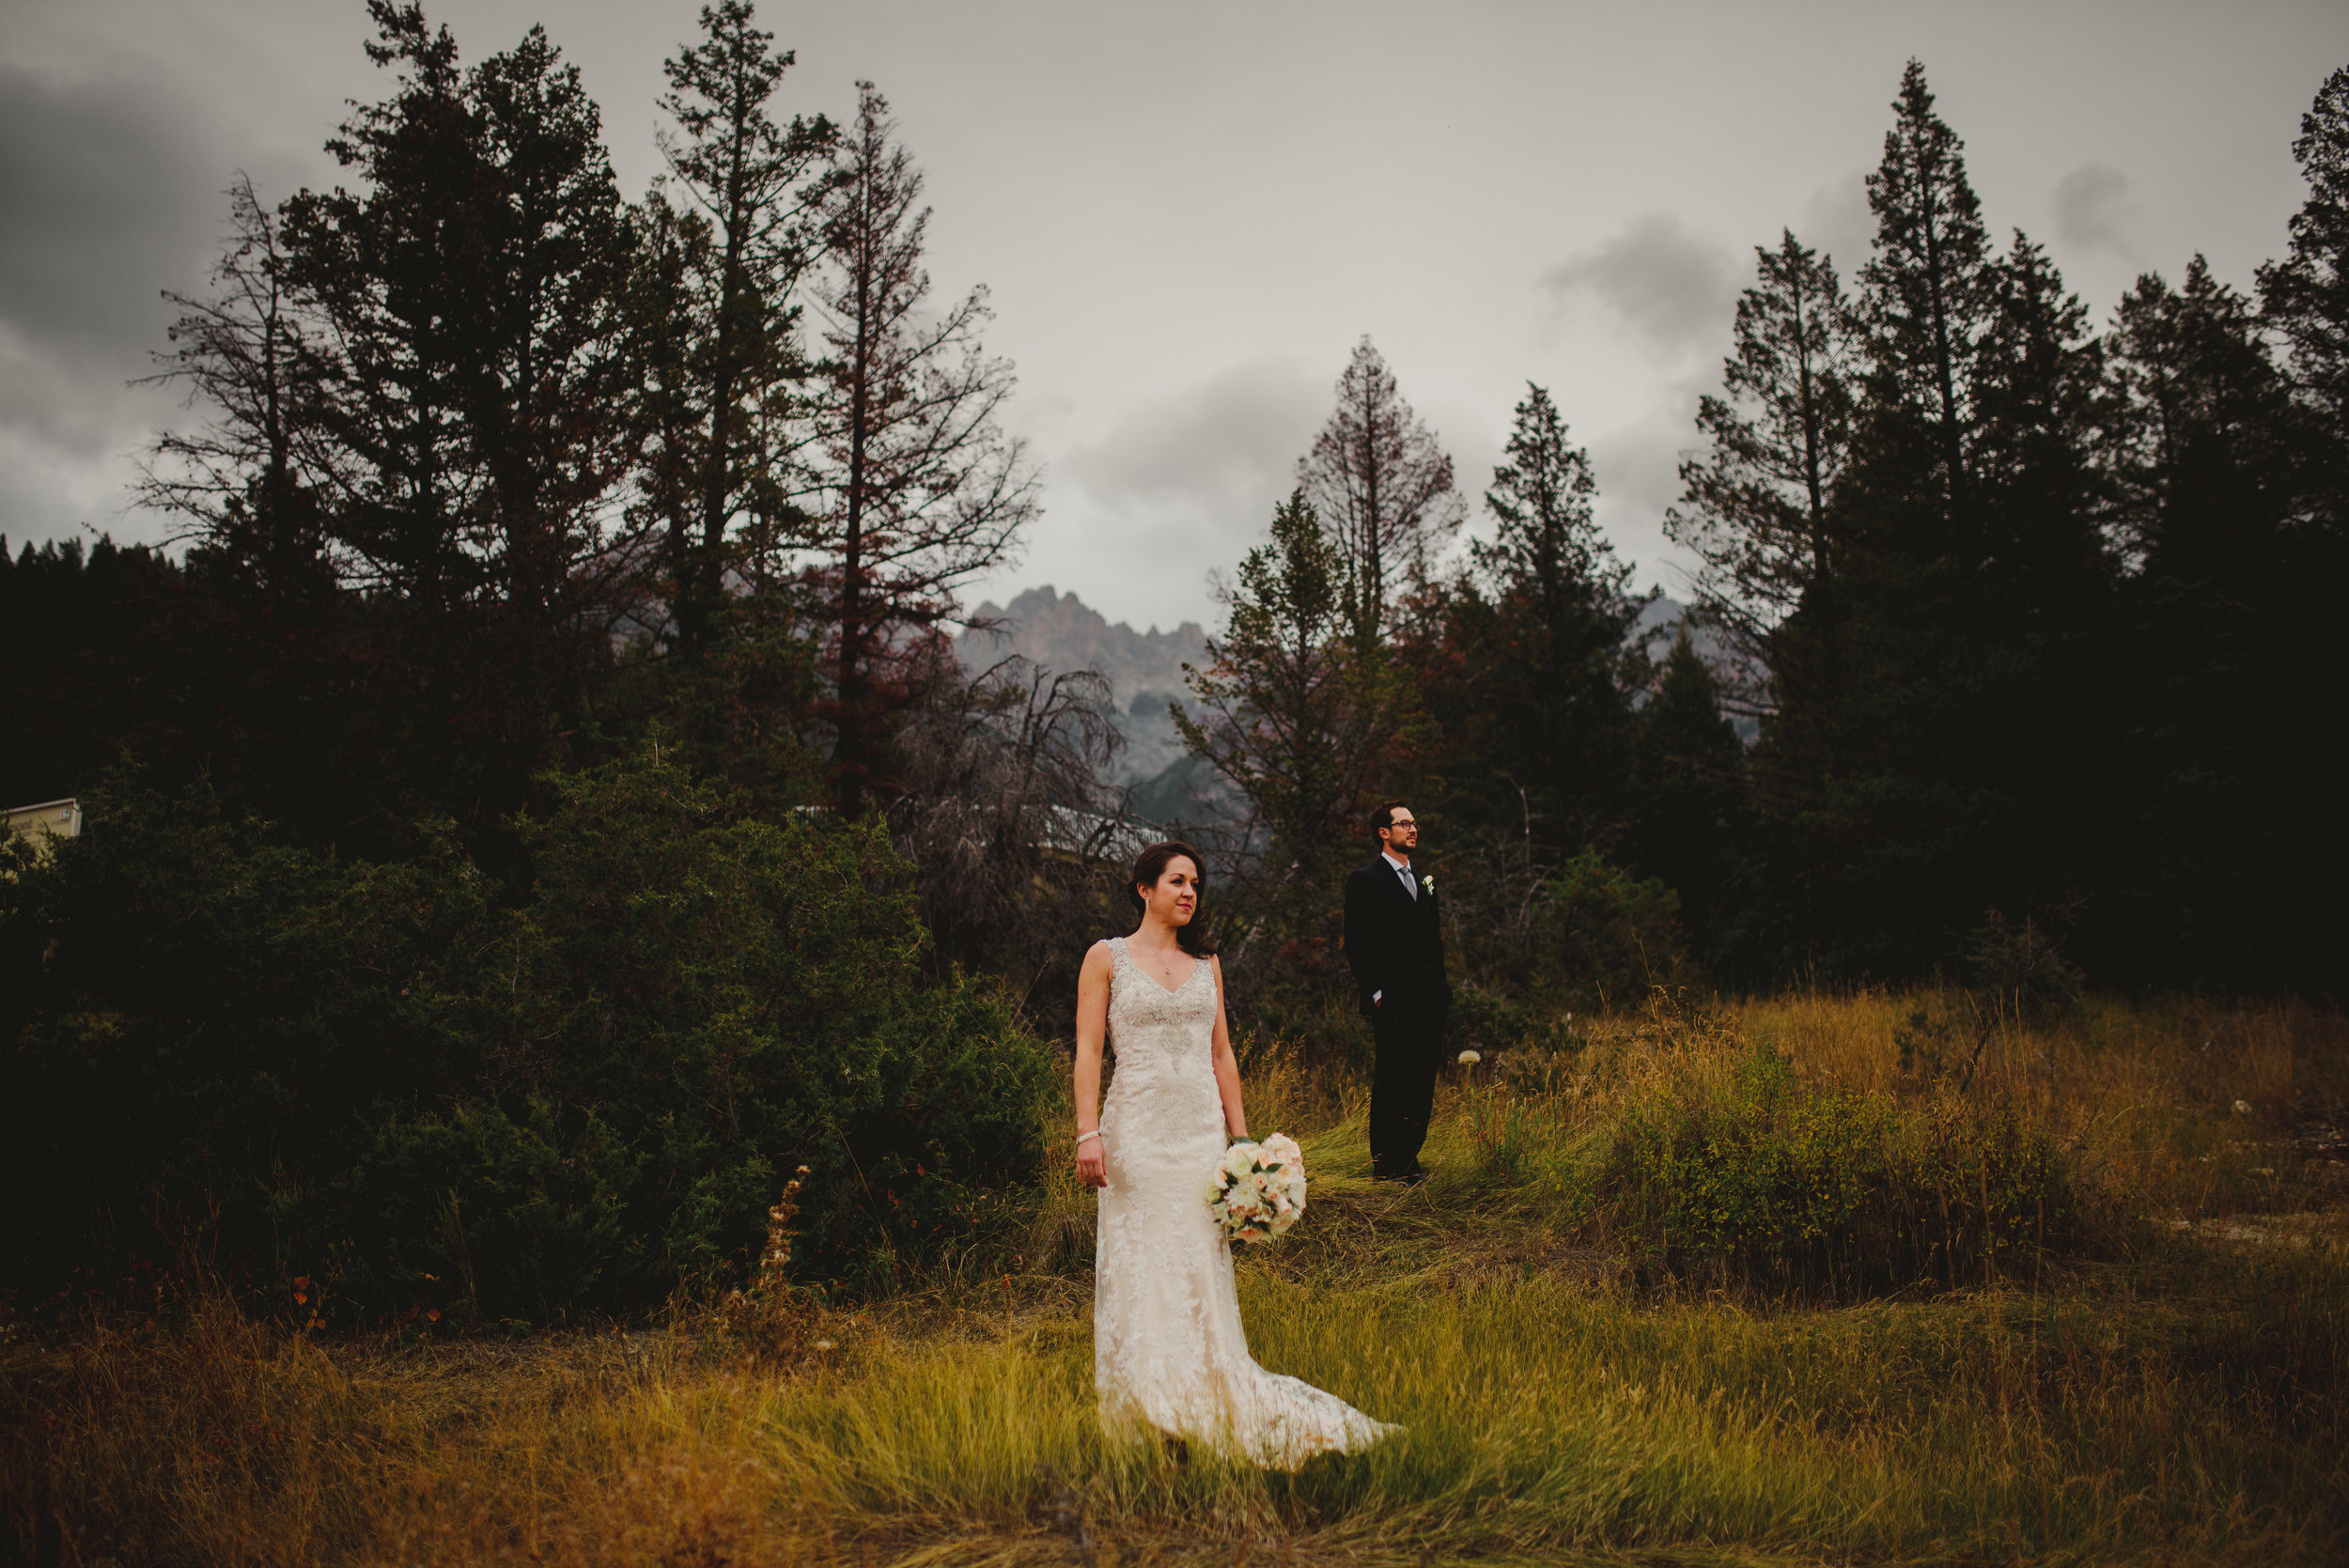 Banff-Wedding-Photographer-MichaelChanPhotography-25.jpg